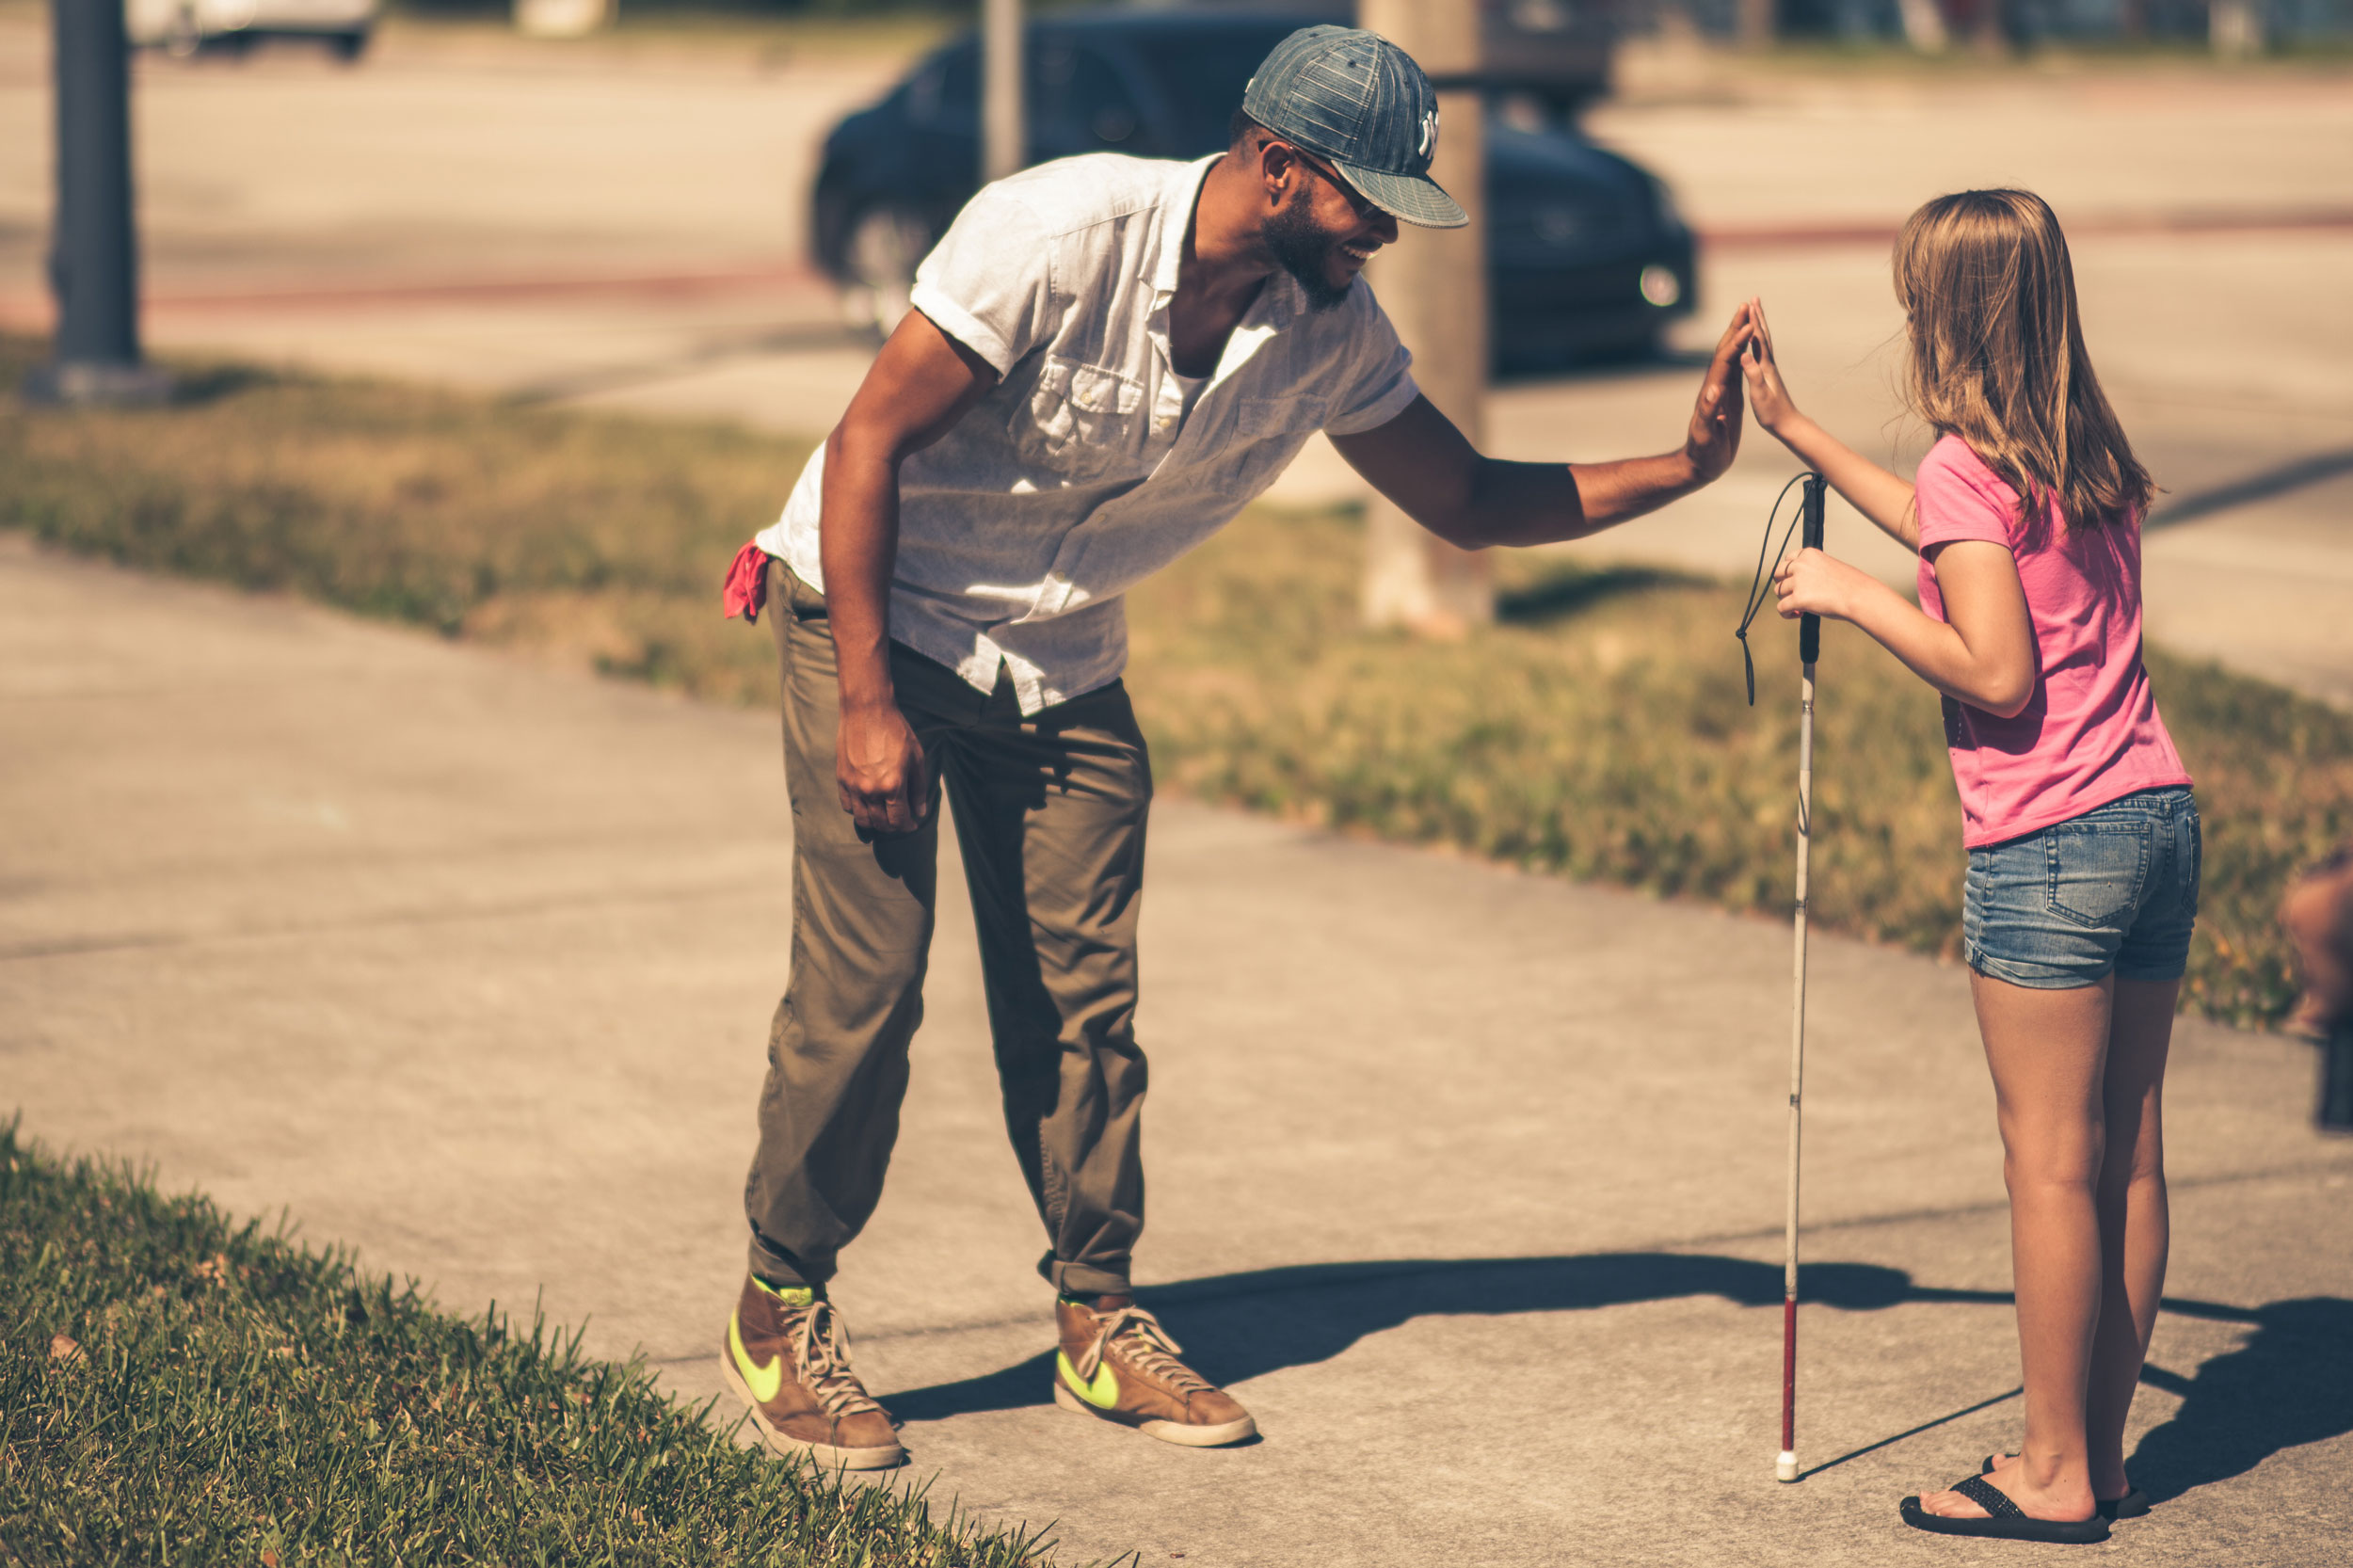 a child who is blind with a white cane in one hand and giving a high five with her other hadn to a person she is passing as she walks on a sidewalk